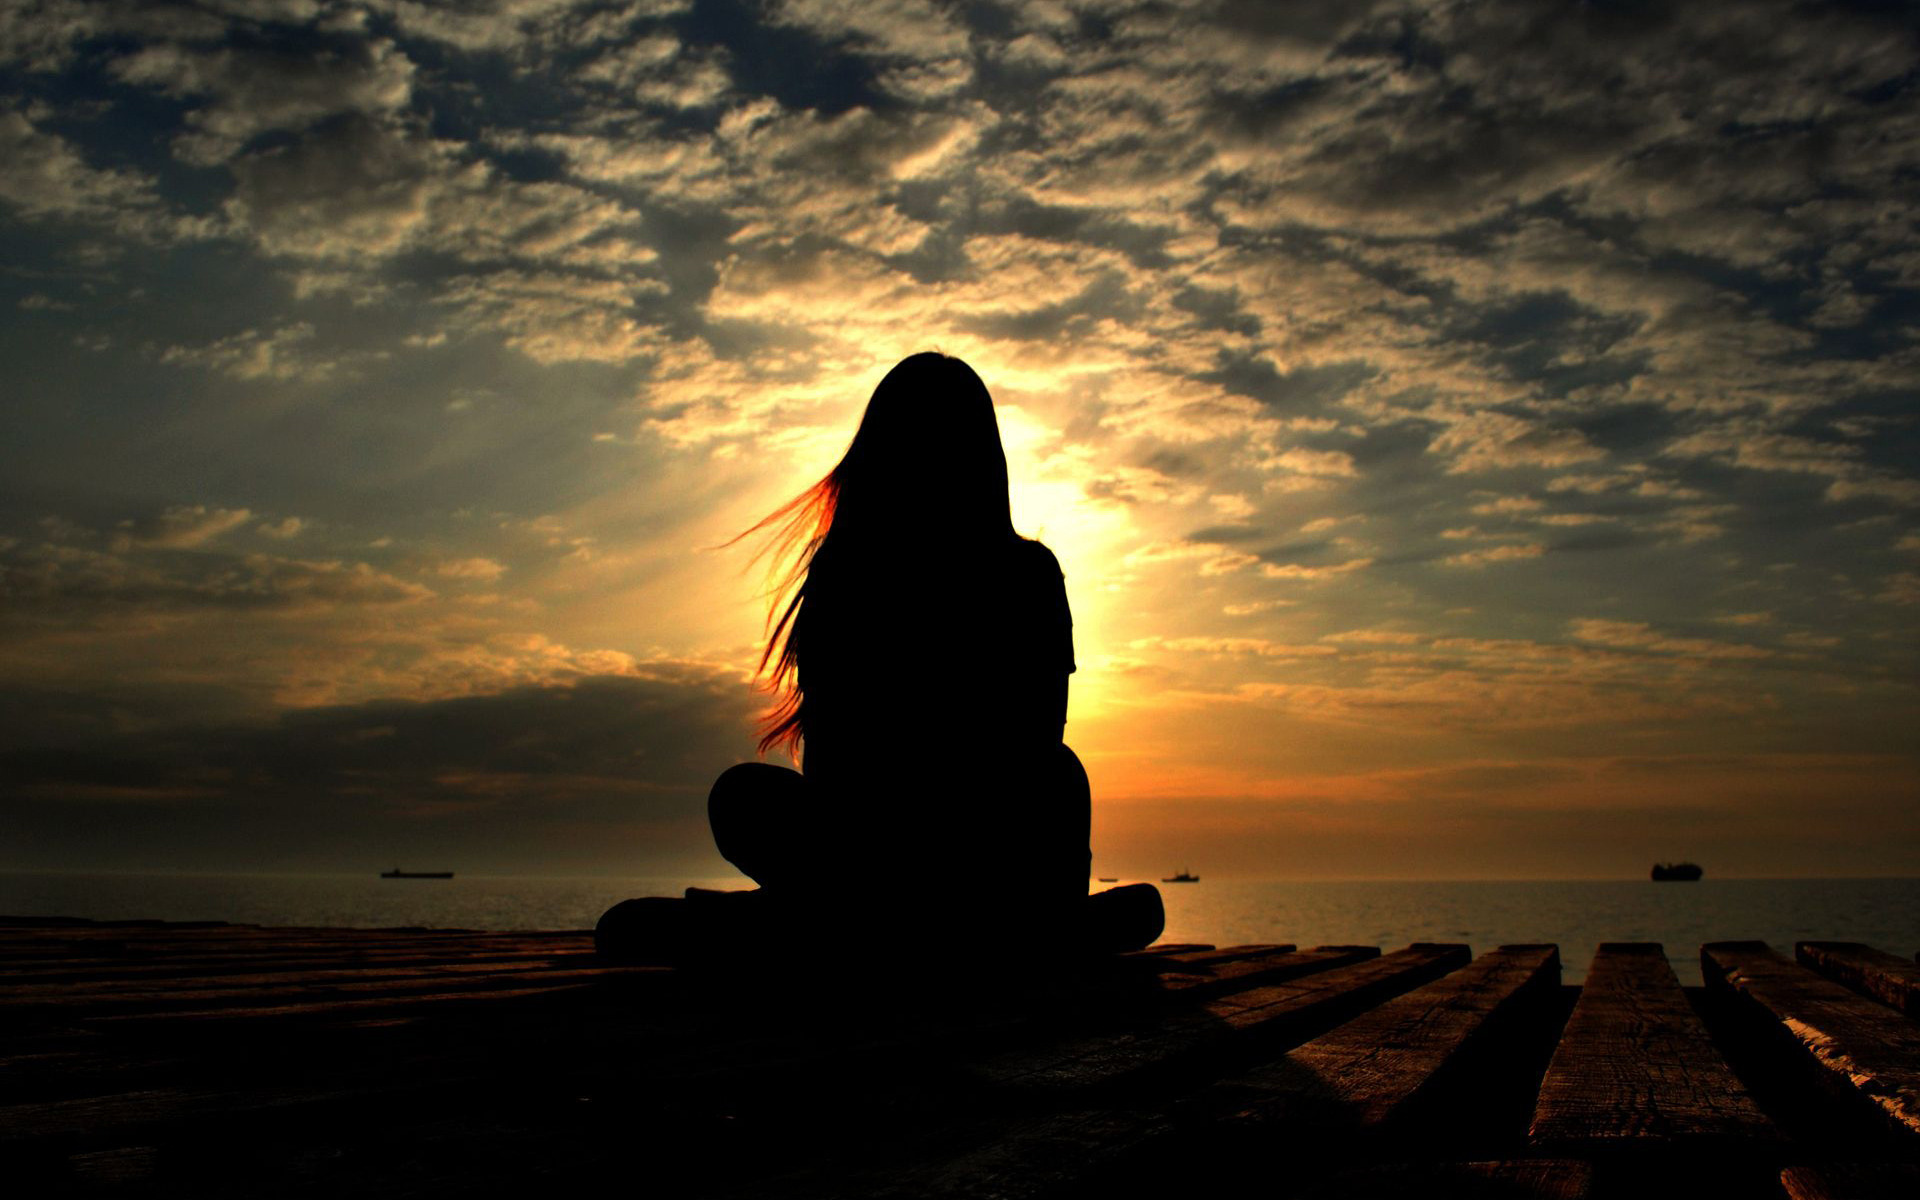 girl-silhouette-in-the-sunset-light-girl-hd-wallpaper-1920x1200-7922